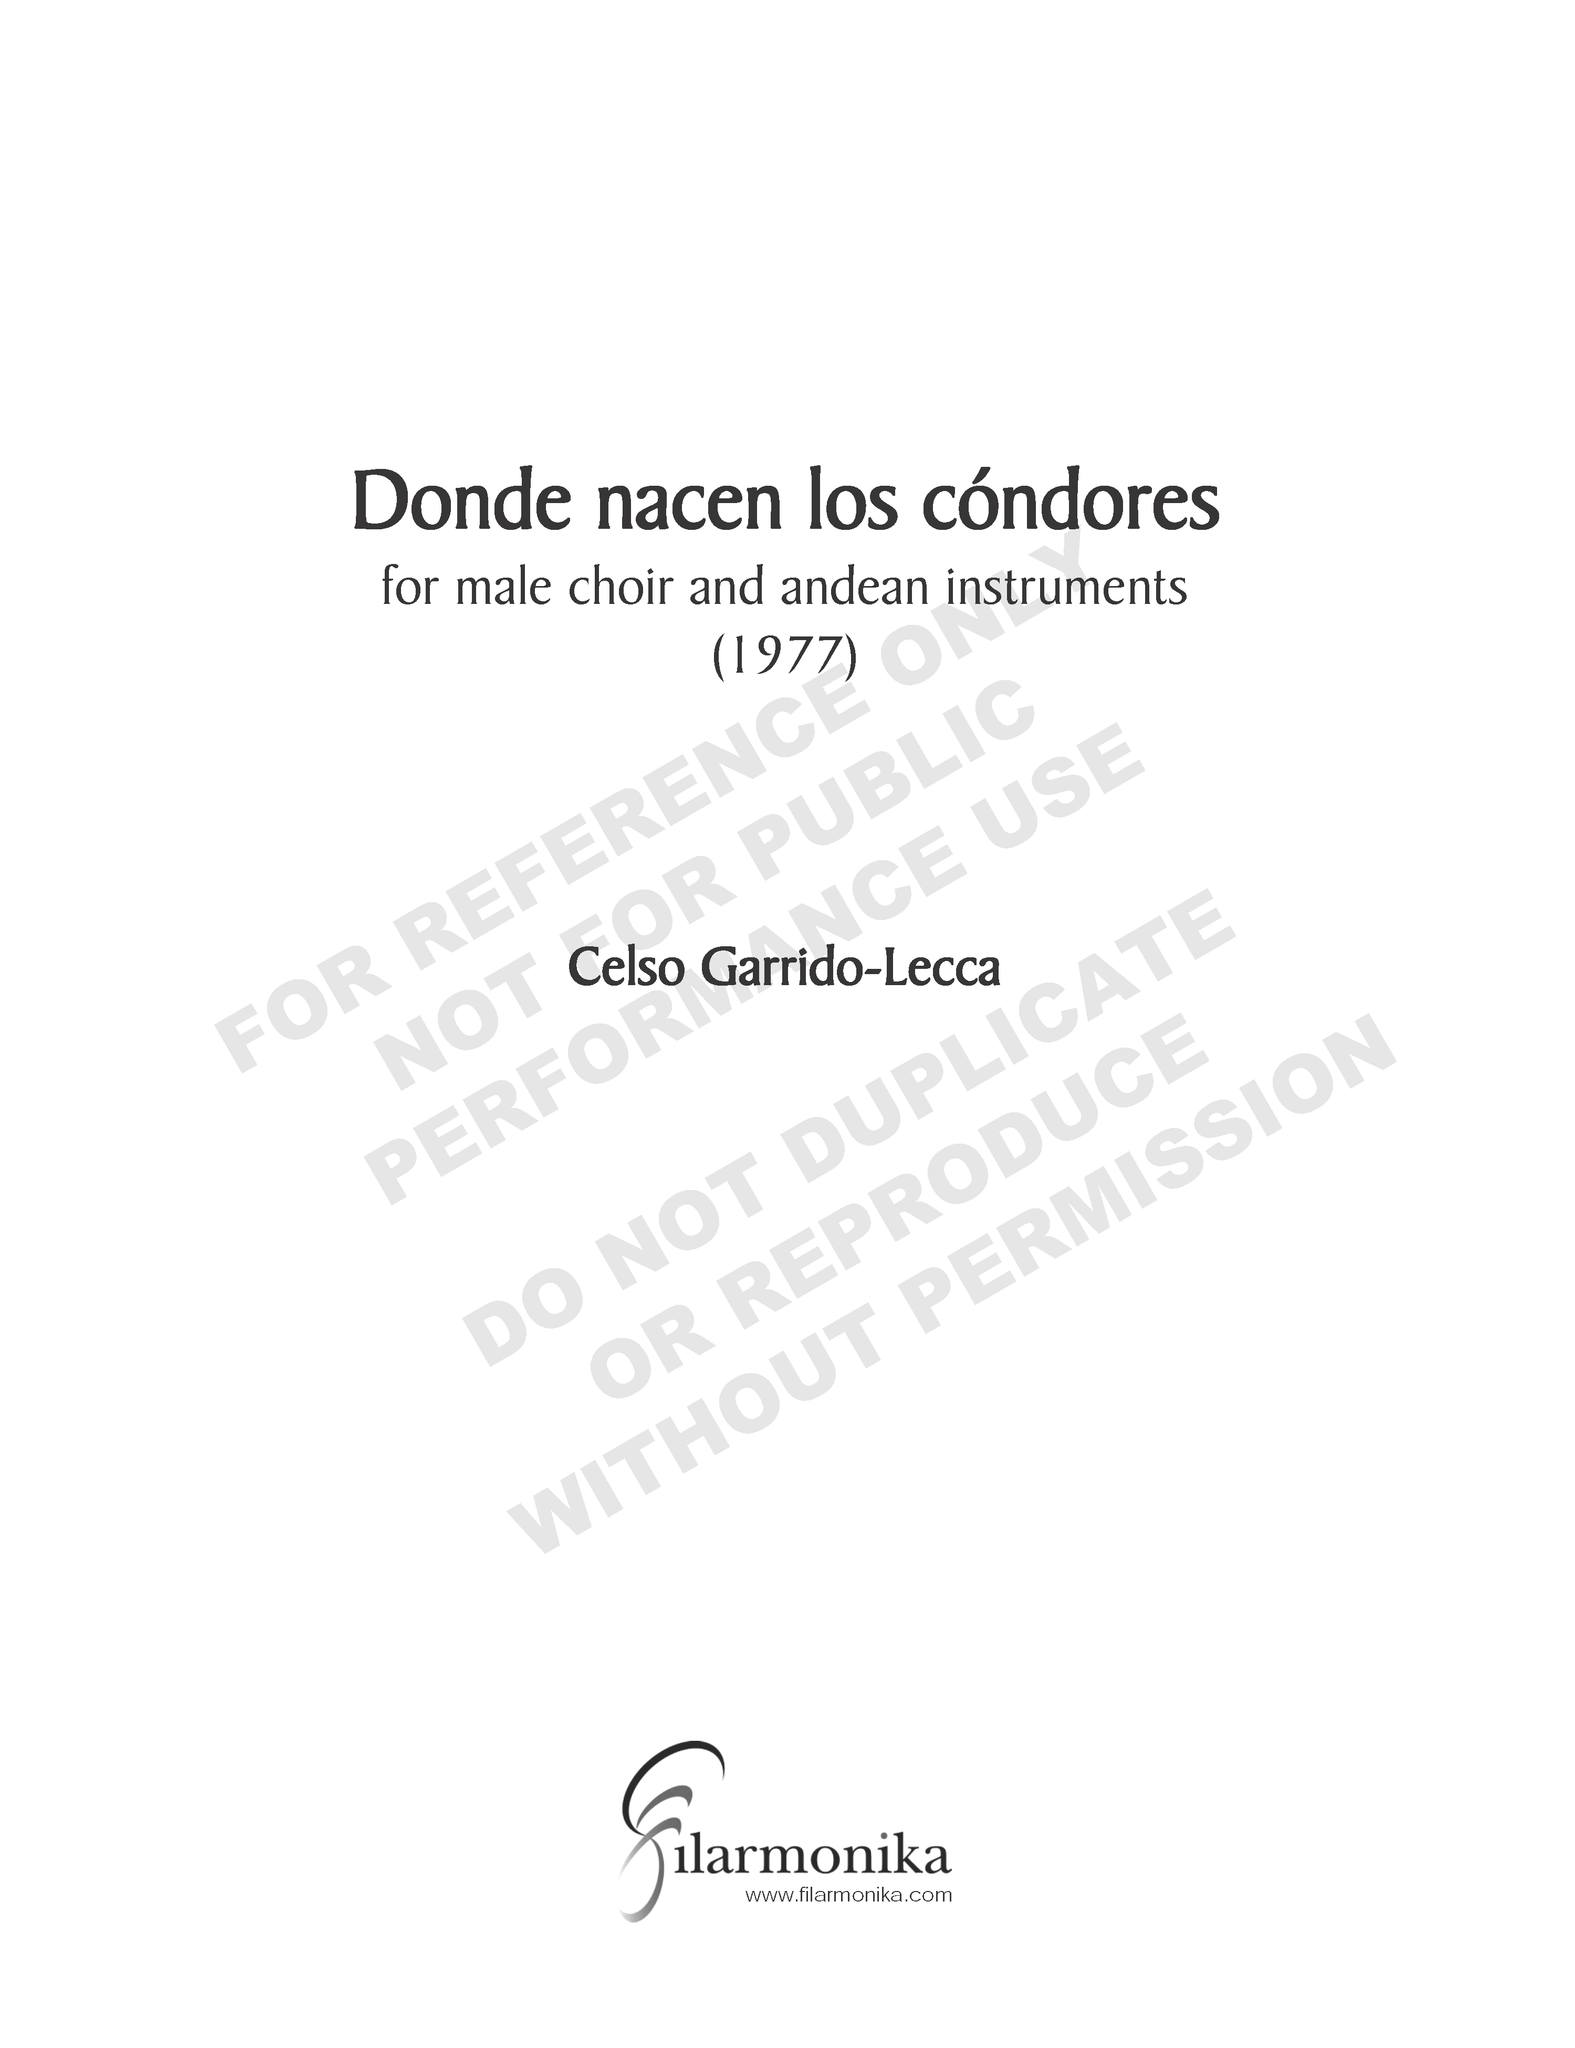 Donde nacen los cóndores, for male choir and andean instruments